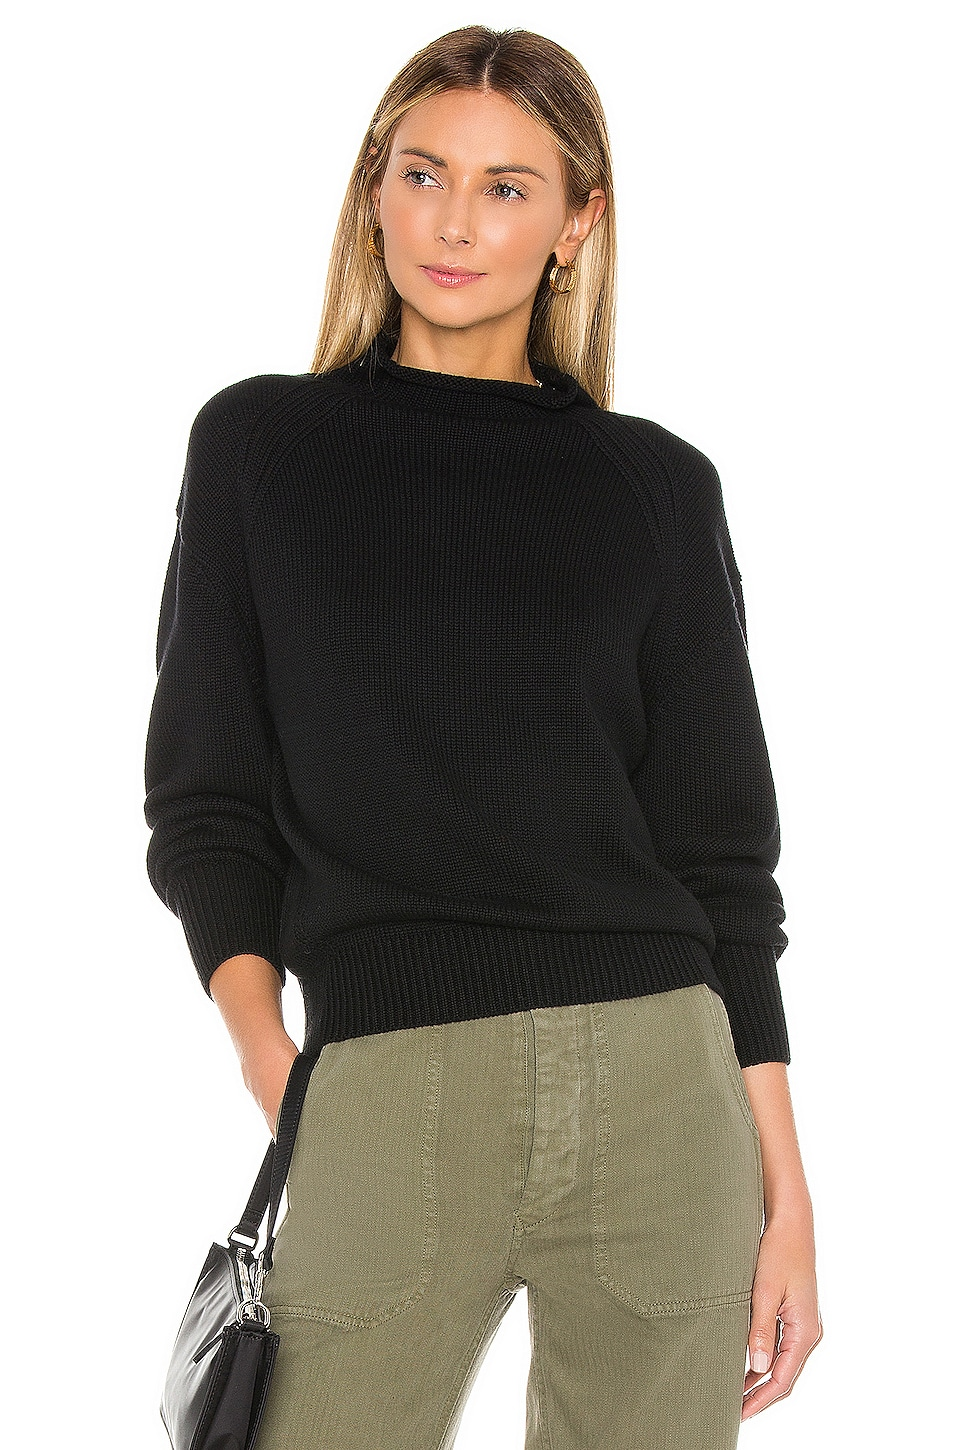 525 america Transfer Detail Mock Neck Sweater in Black